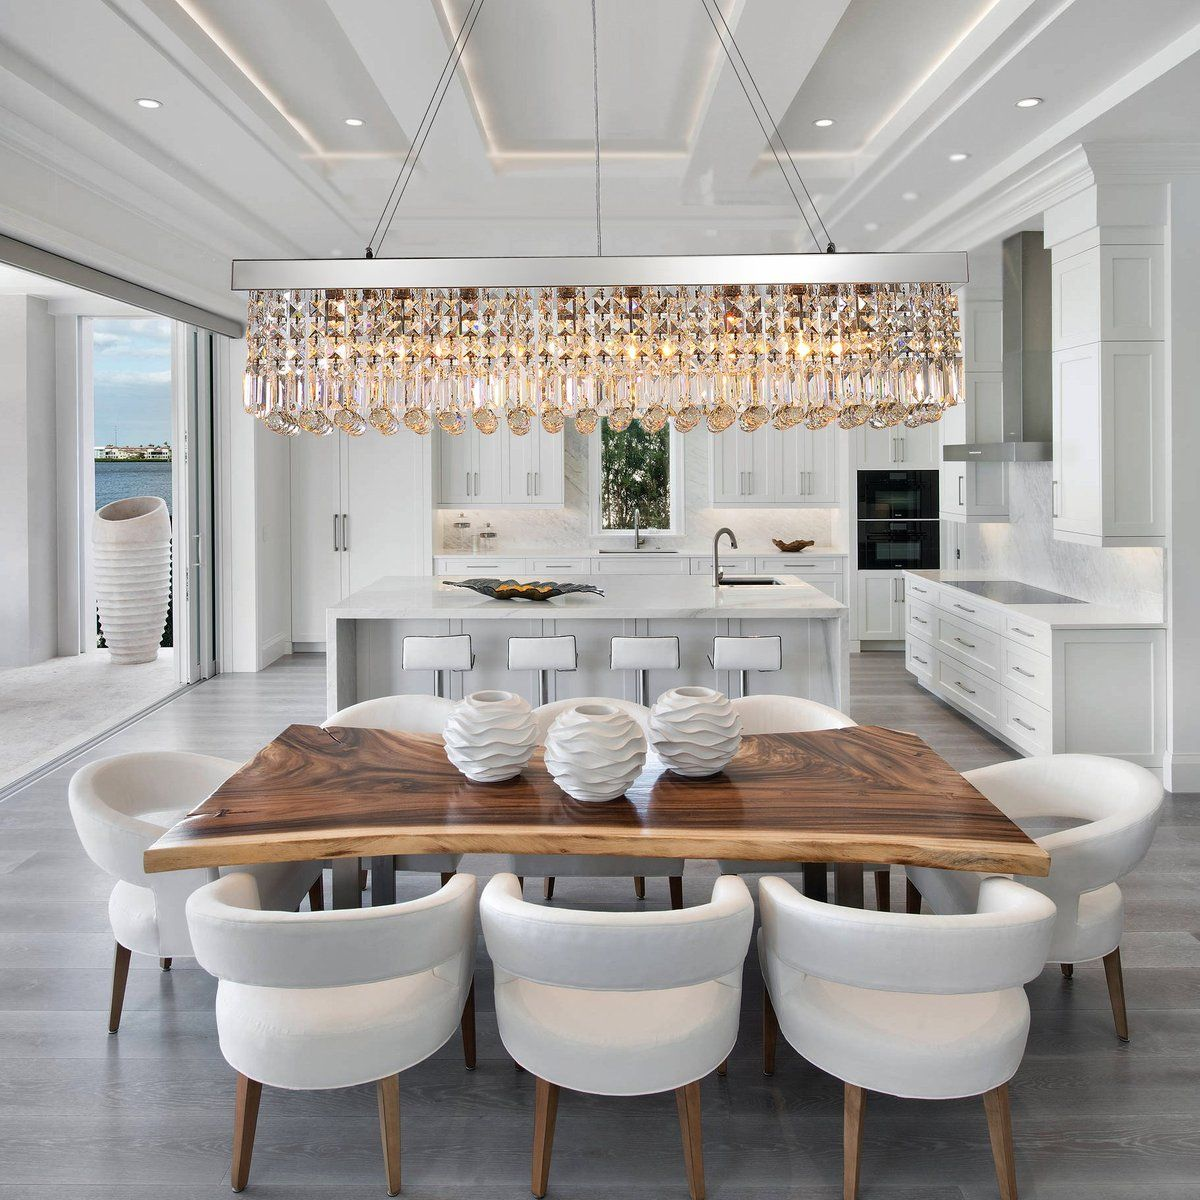 Best Chandeliers For Dining Room: Rectangular Crystal Raindrop Chandelier Dining Room In